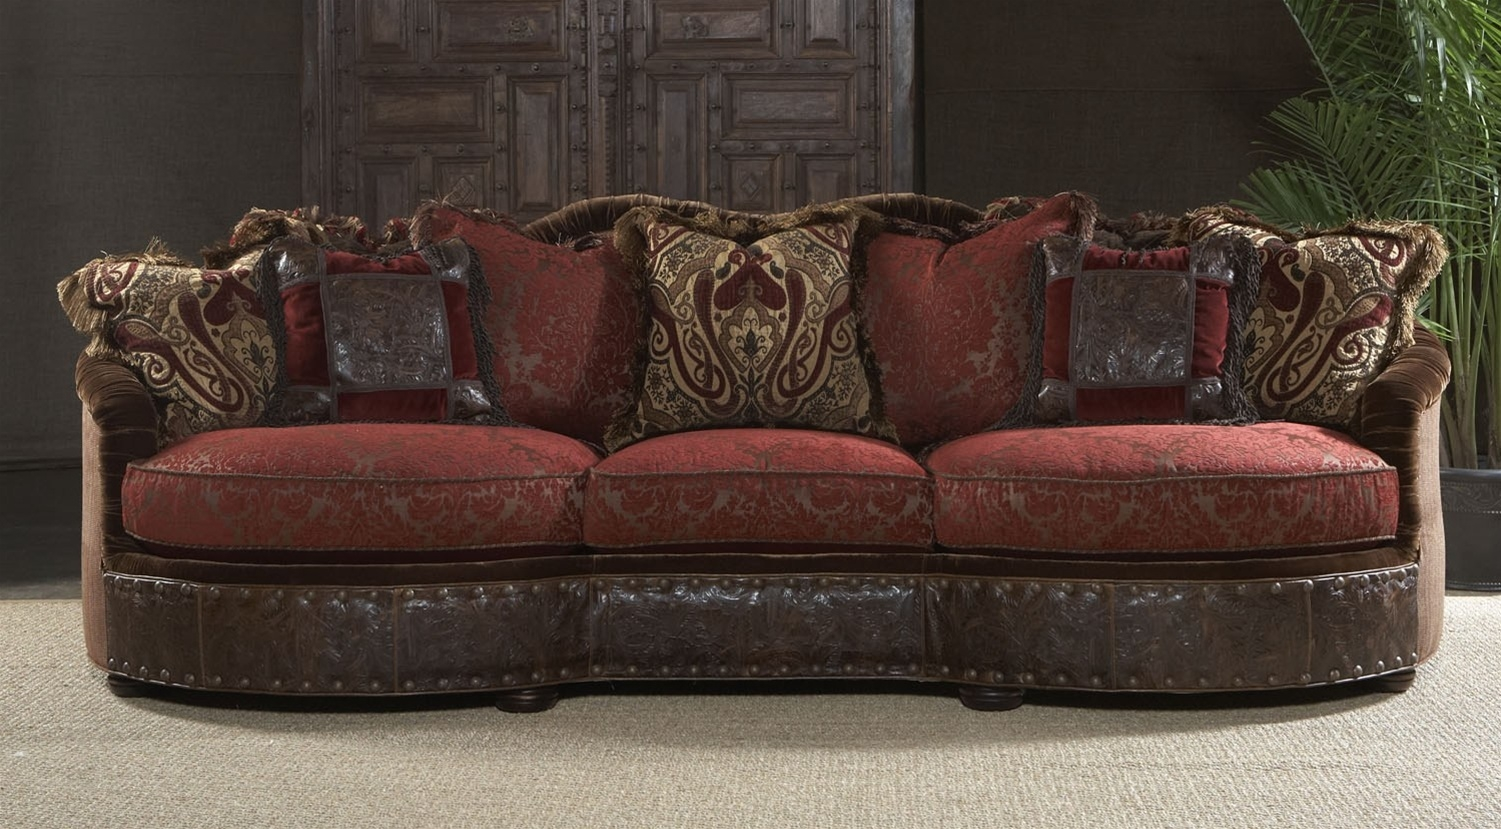 11 Luxury Red Burgundy Sofa Or Couch Within Gothic Sofas (Image 1 of 15)